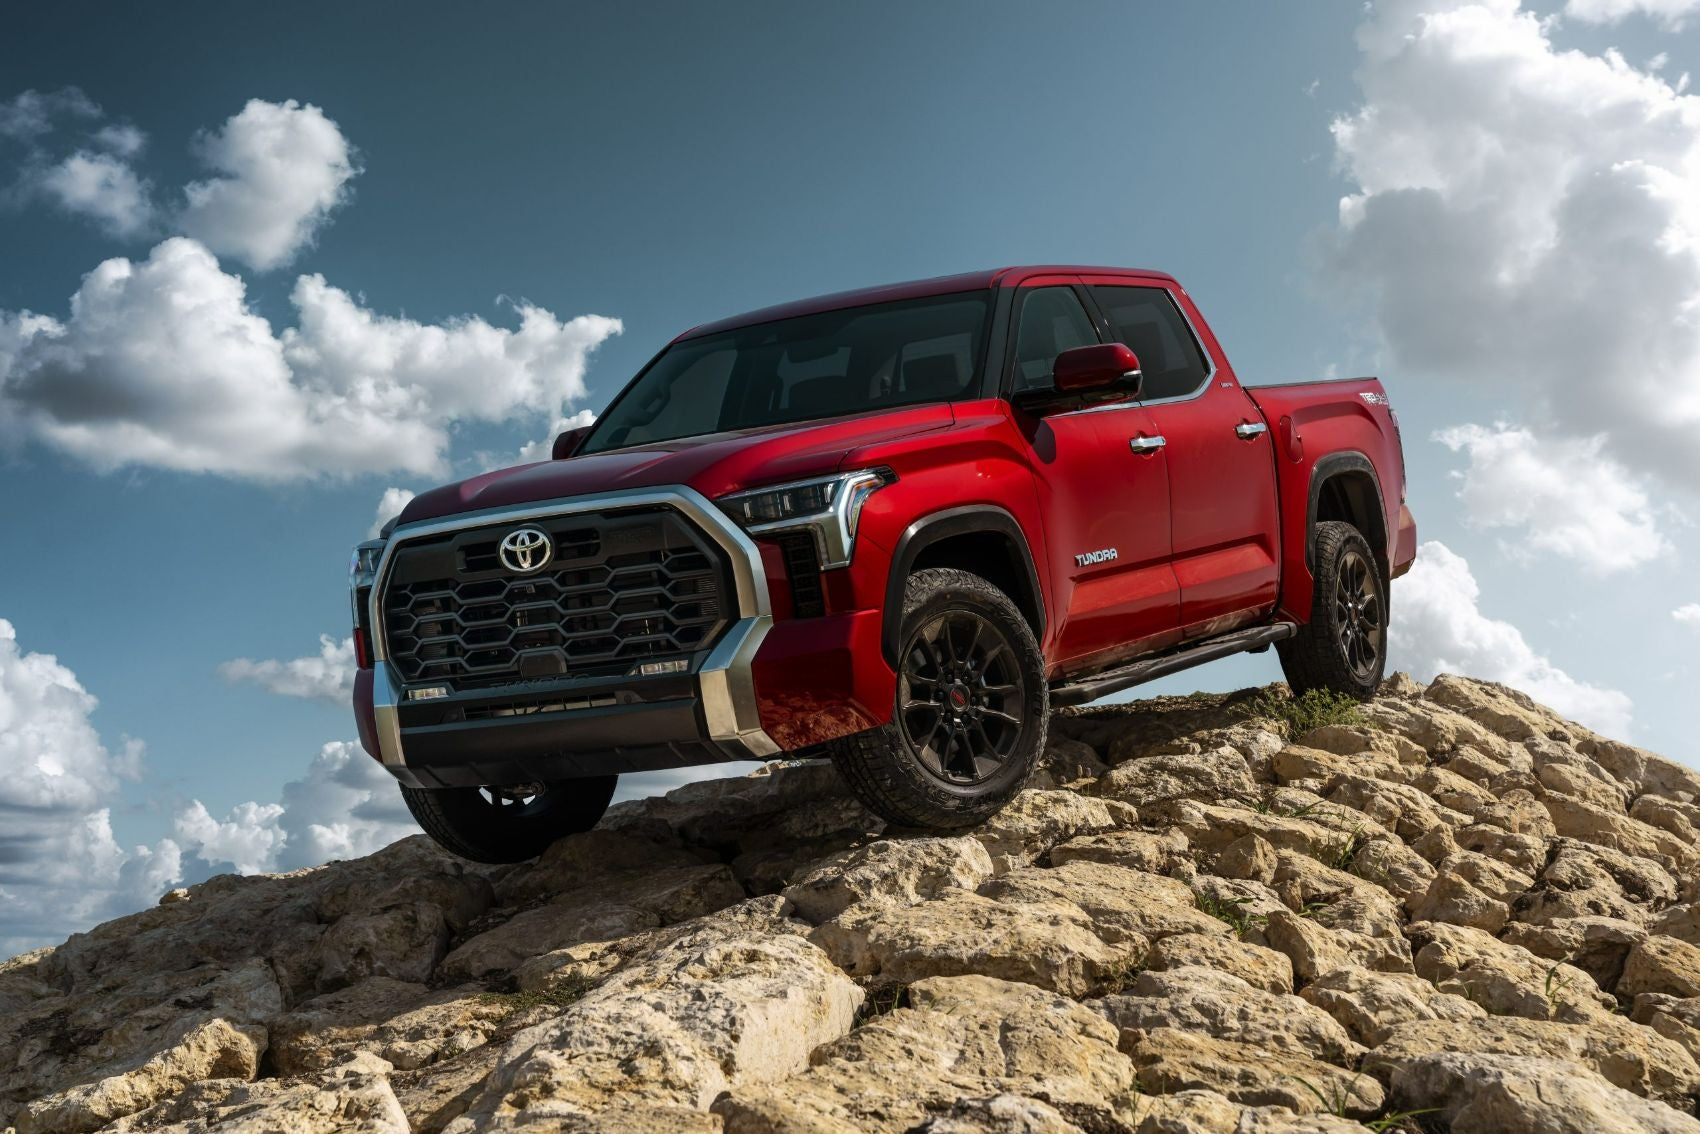 2022 Toyota Tundra Revealed: More Powerful Engines, Rugged Suspension Revisions, New Tech Features & More